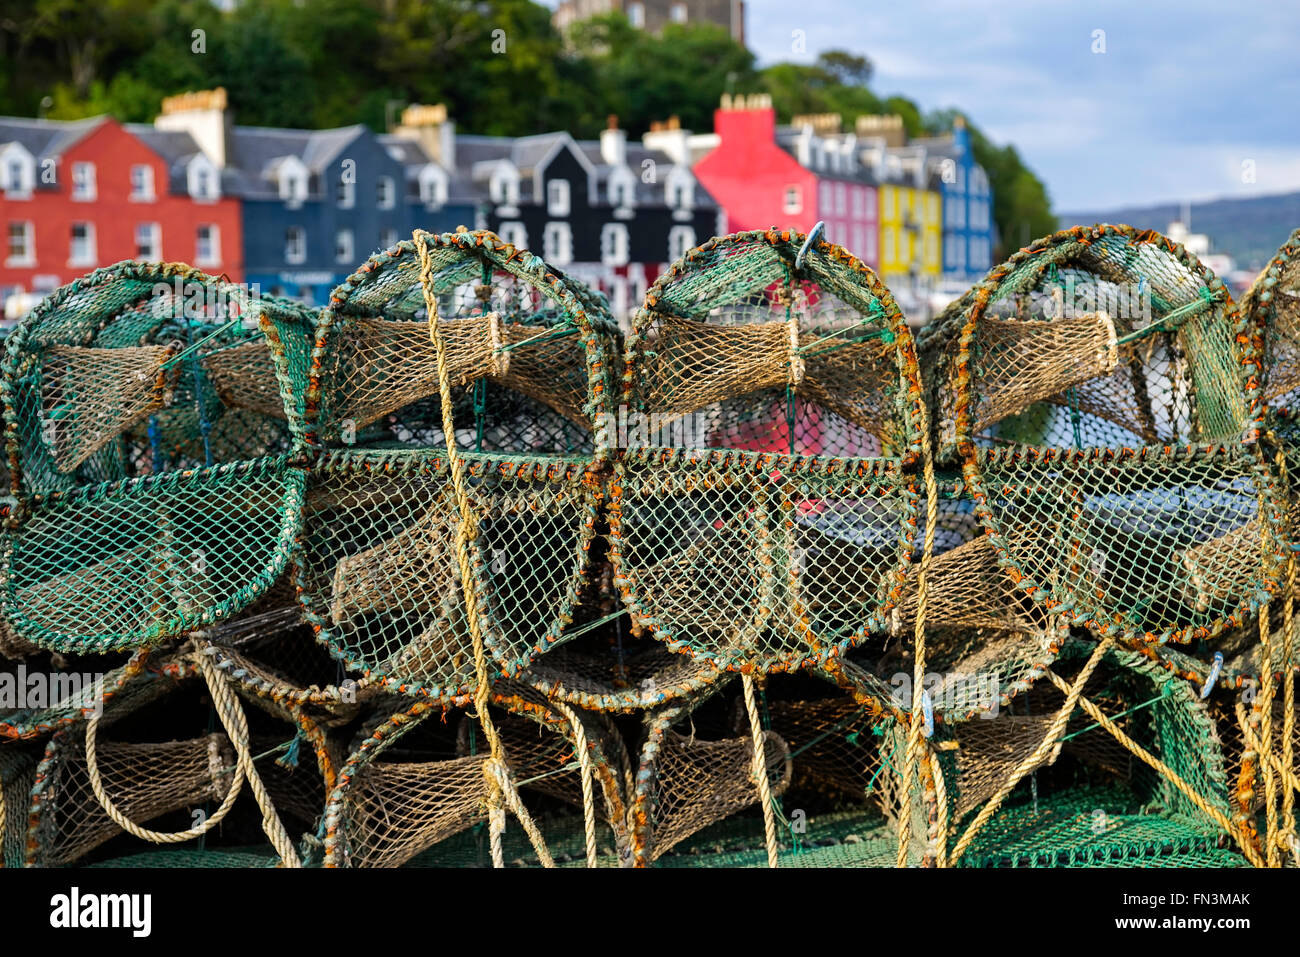 Lobster pots and picturesque painted houses in the port of Tobermory, on the Isle of Mull, Inner Hebrides, Scotland - Stock Image